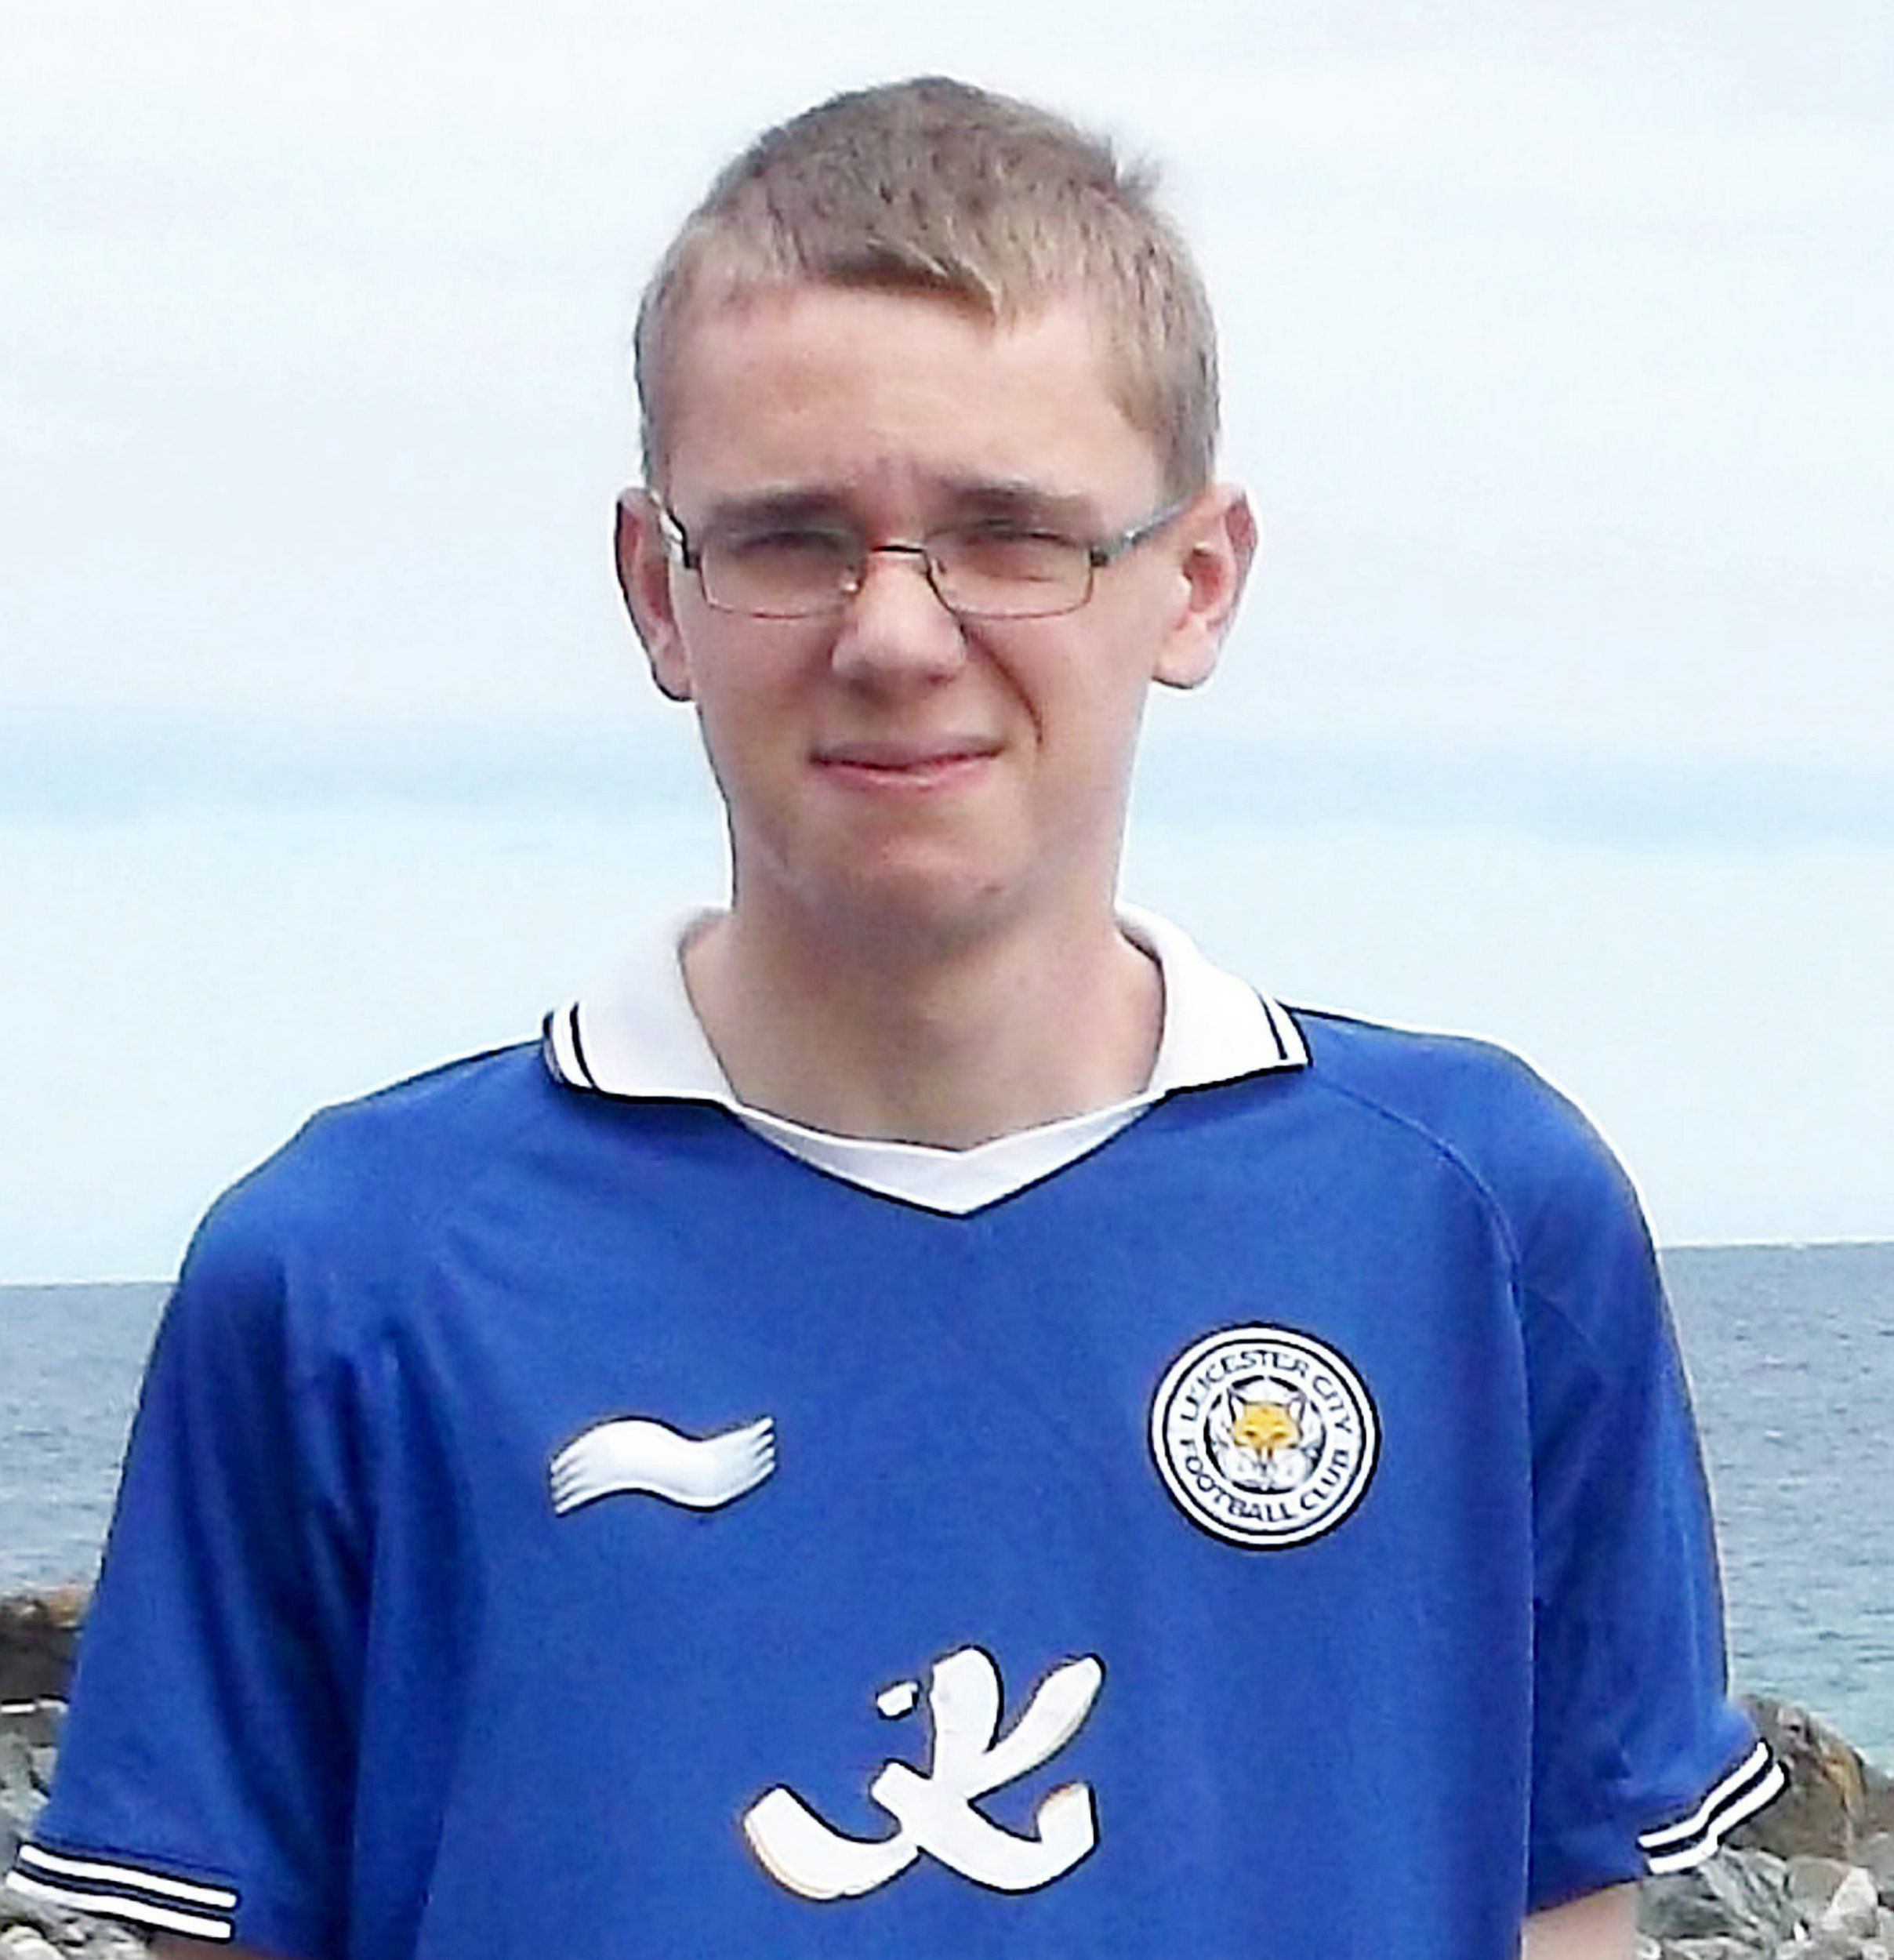 Leicester City supporter, 16, collapses at home and dies of heart problem while watching his team lose